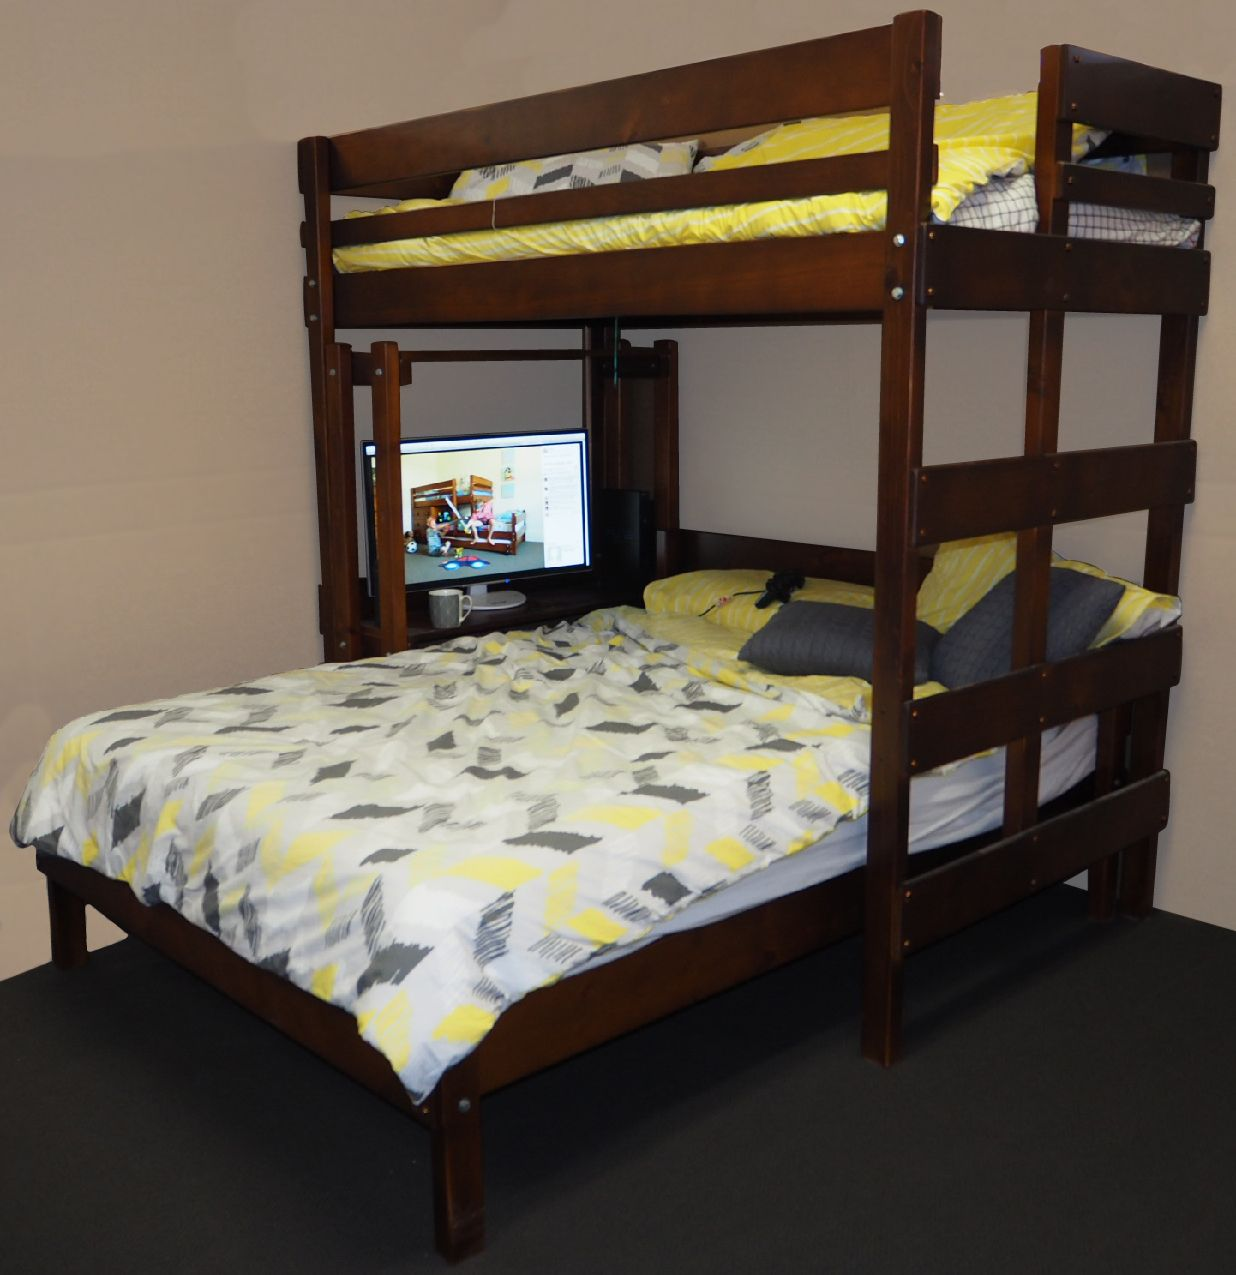 Best Bunk Beds & Custom Fitted Bunk Bed Bedding | Bunk ...